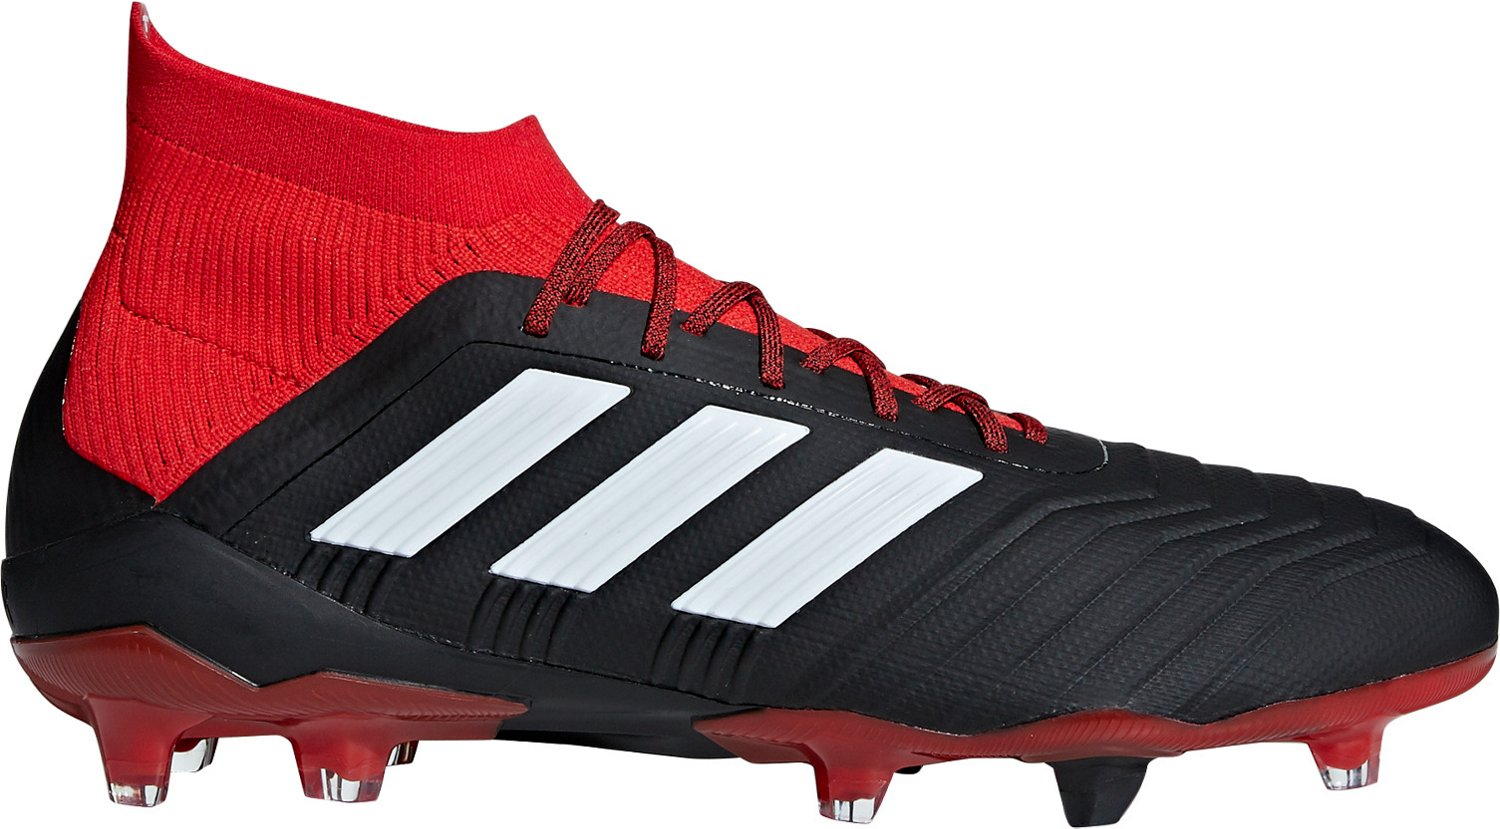 a74eaac738d40 Display product reviews for adidas Men's Predator 18.1 Firm Ground Soccer  Cleats